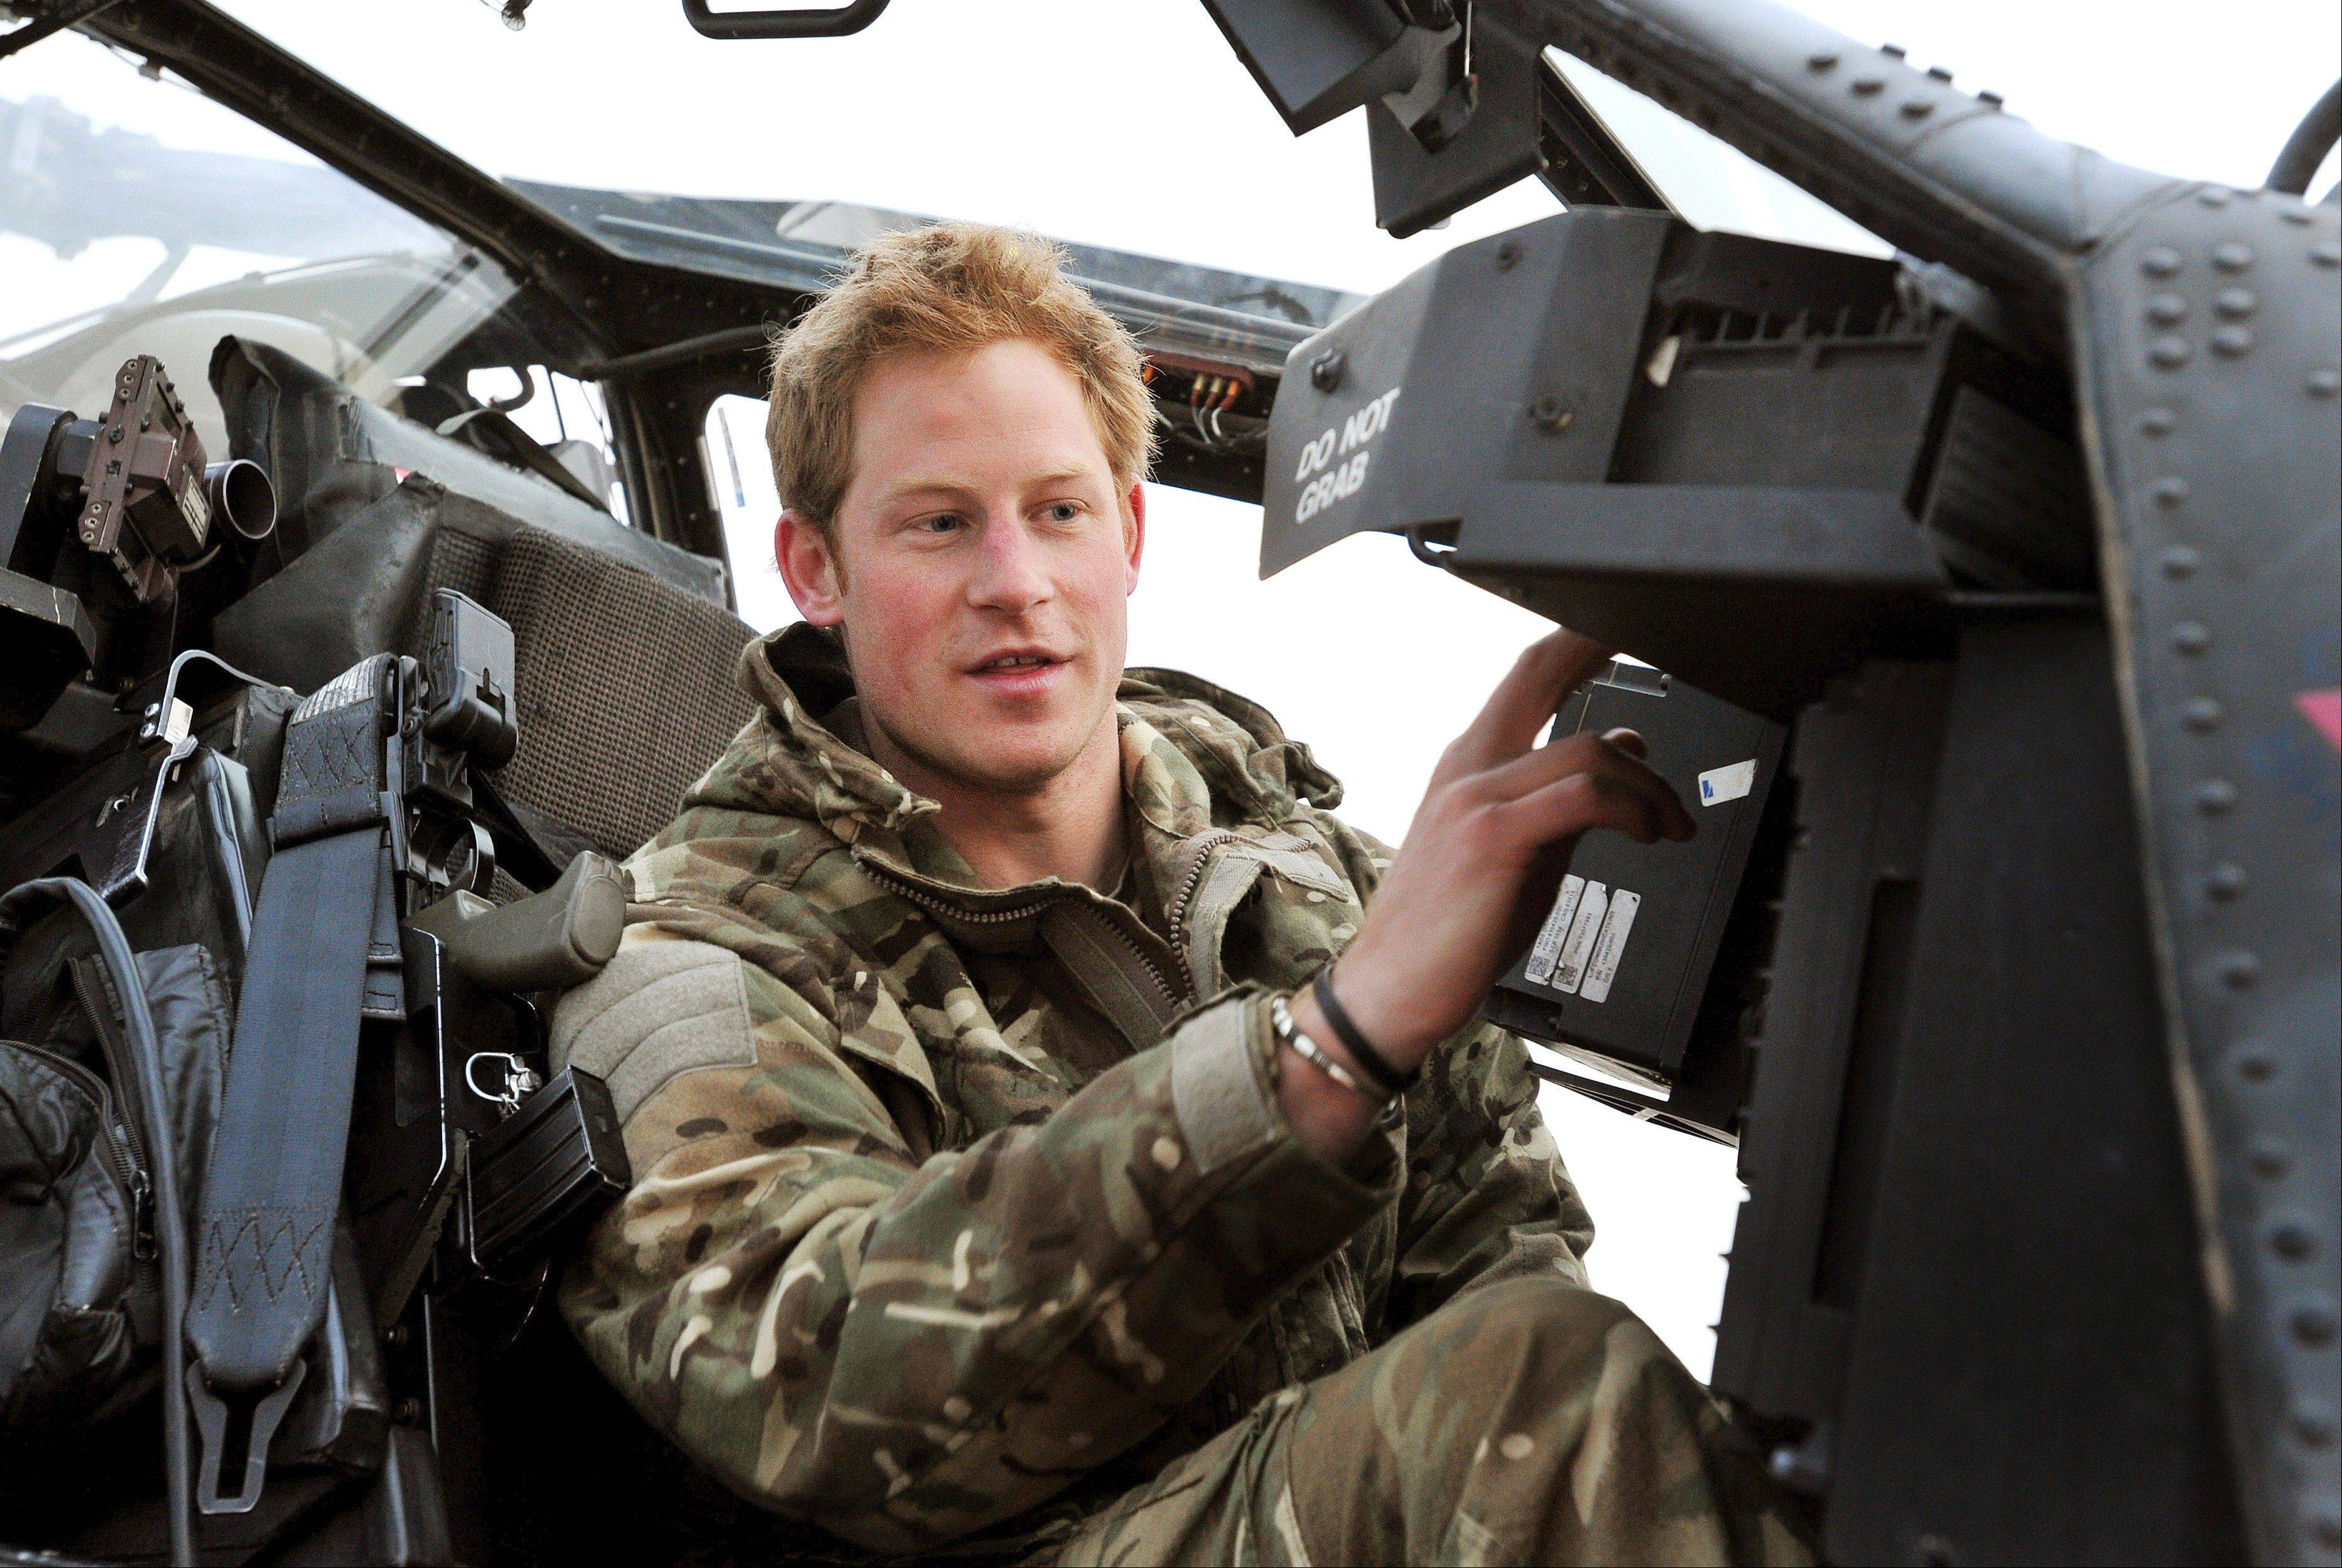 Britain�s Prince Harry, or just plain Captain Wales as he is known in the British Army, is seen last month as he makes his early morning pre-flight checks on the flight-line, from Camp Bastion southern Afghanistan.